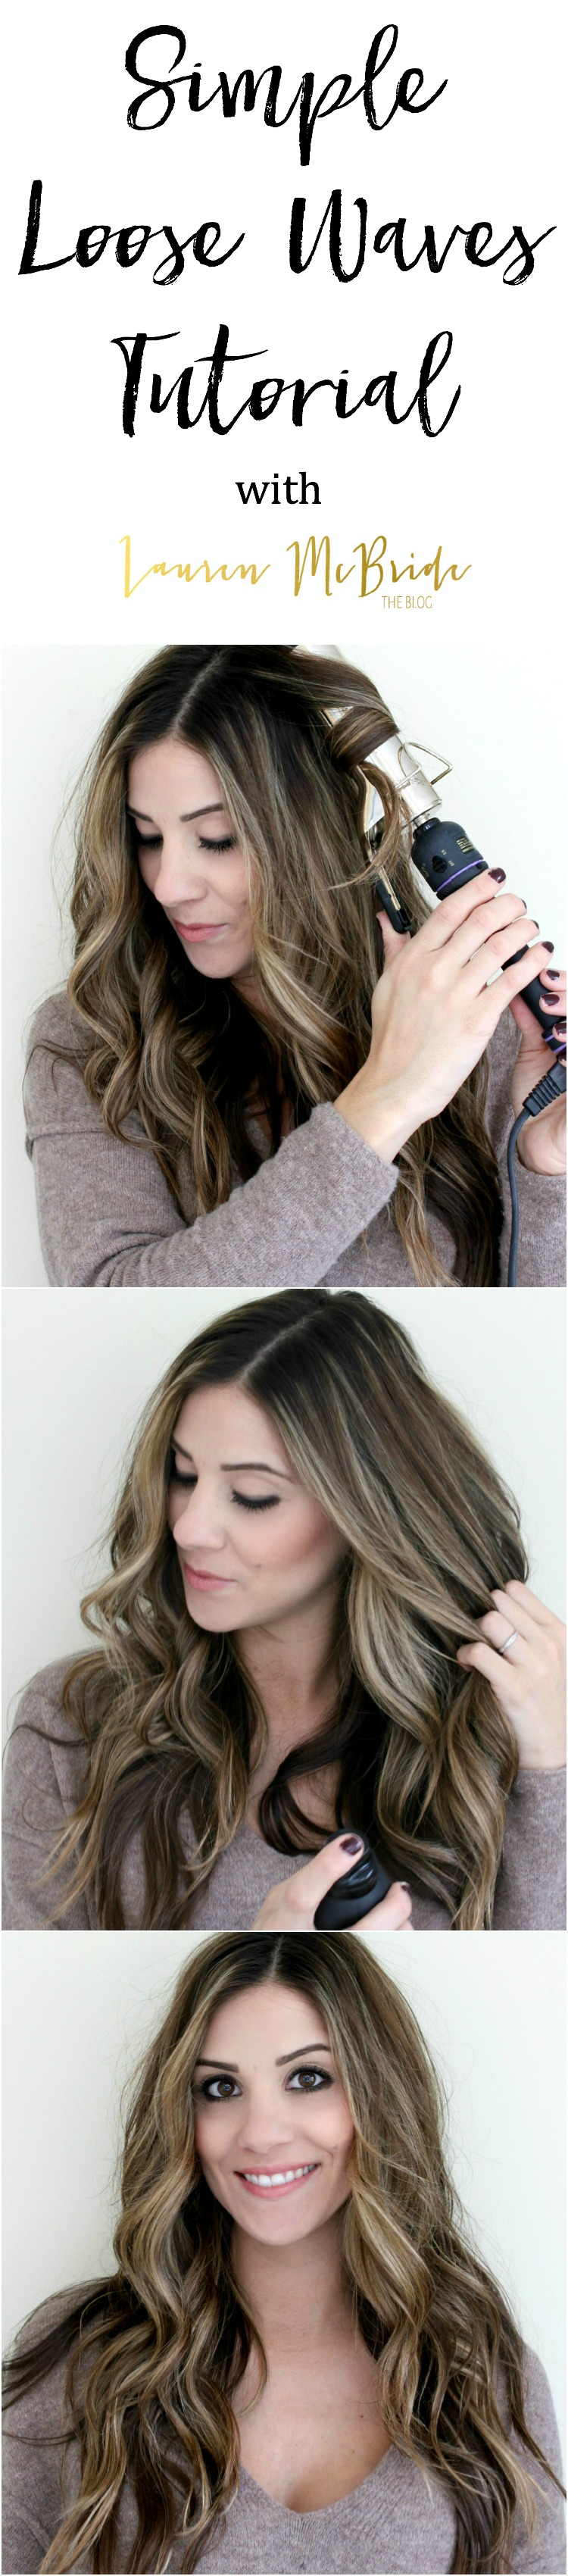 Bookmark this! Mom Hair: Easy Simple Loose Waves Tutorial which will have you finished your hair in no time at all!